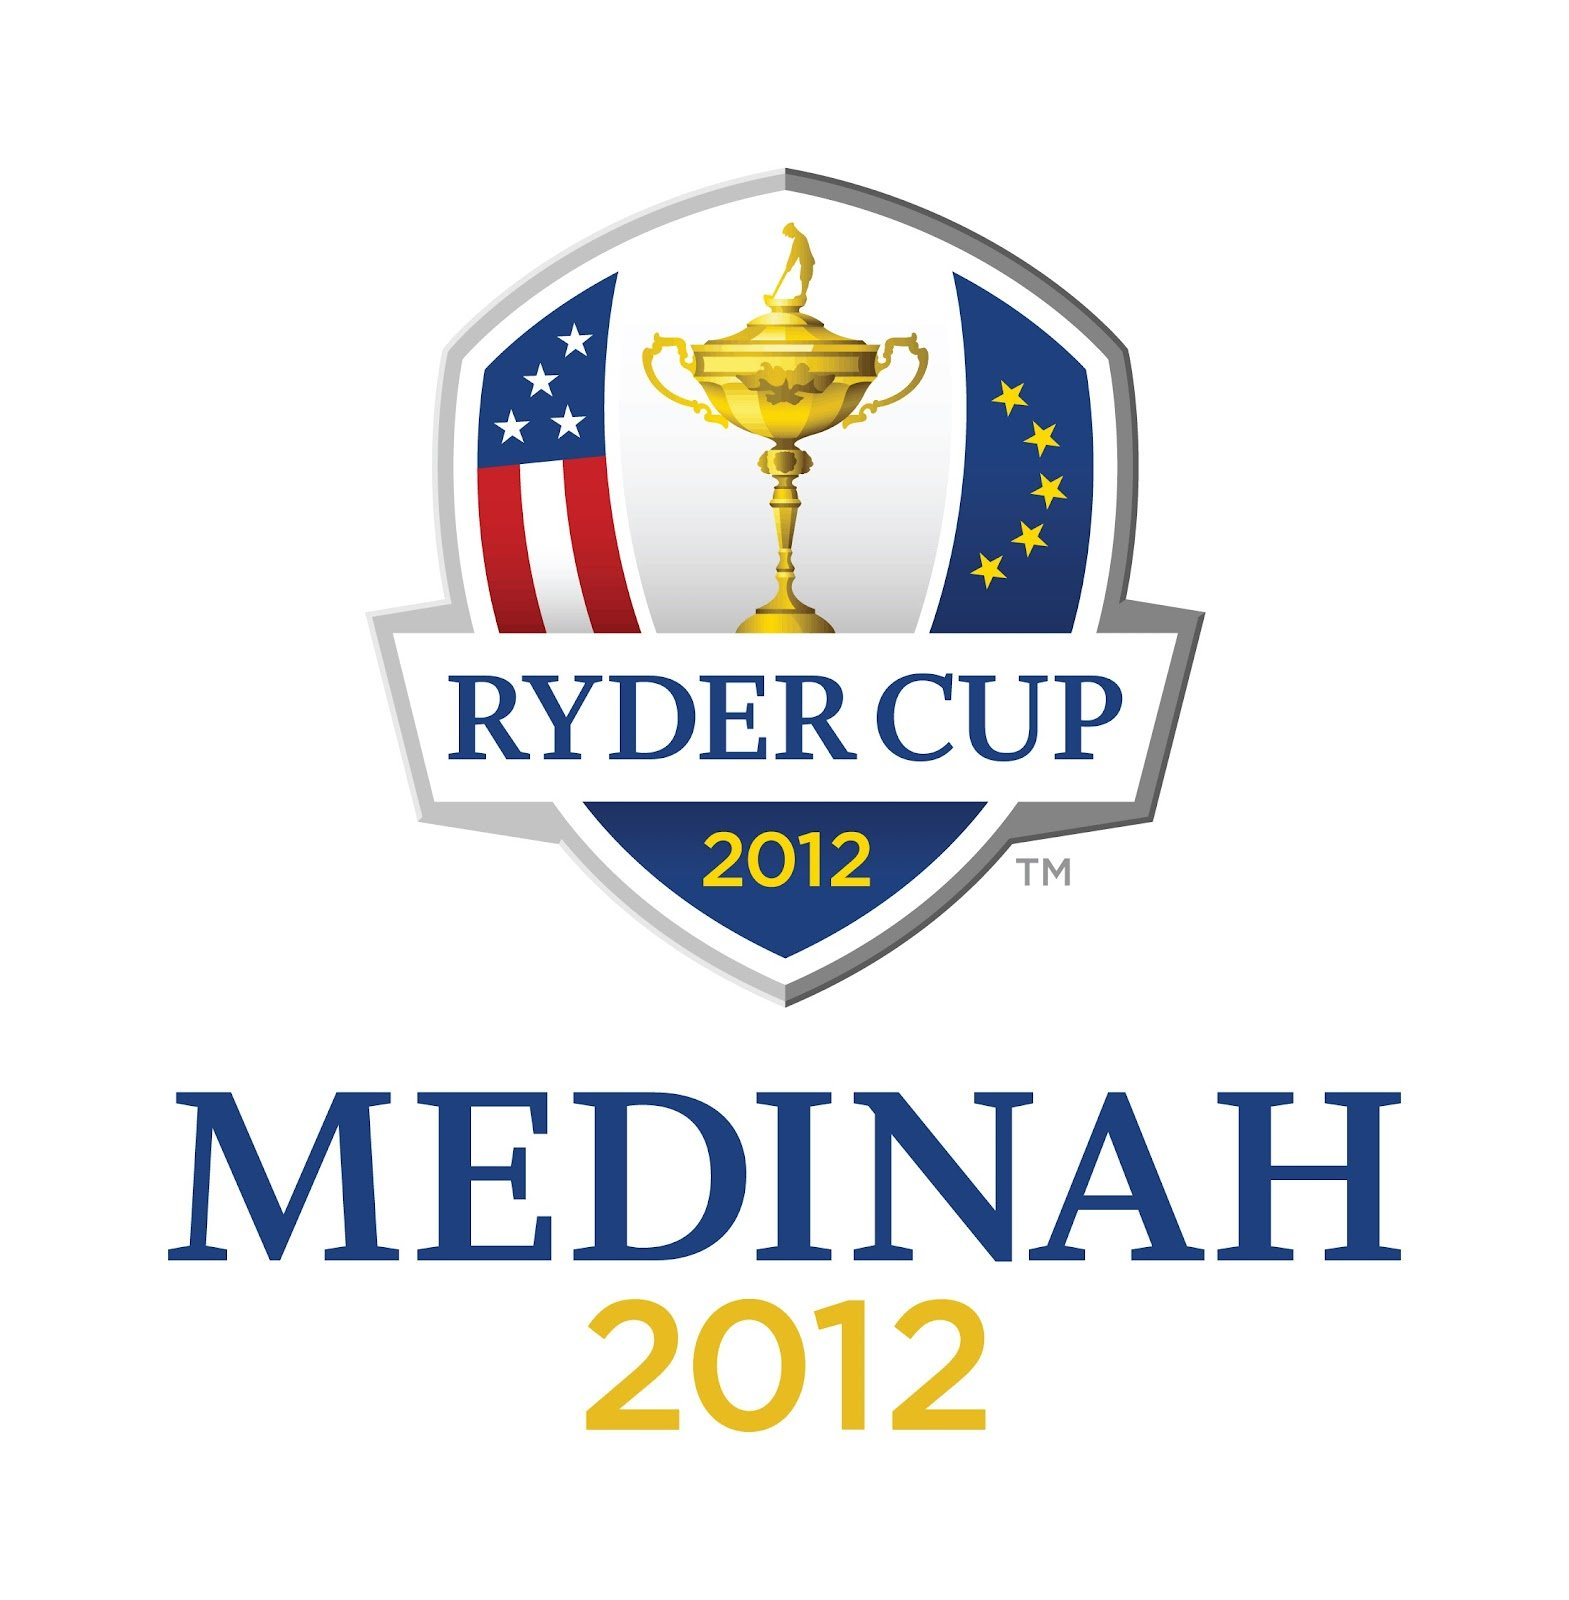 The Ryder Cup is held at Medinah.